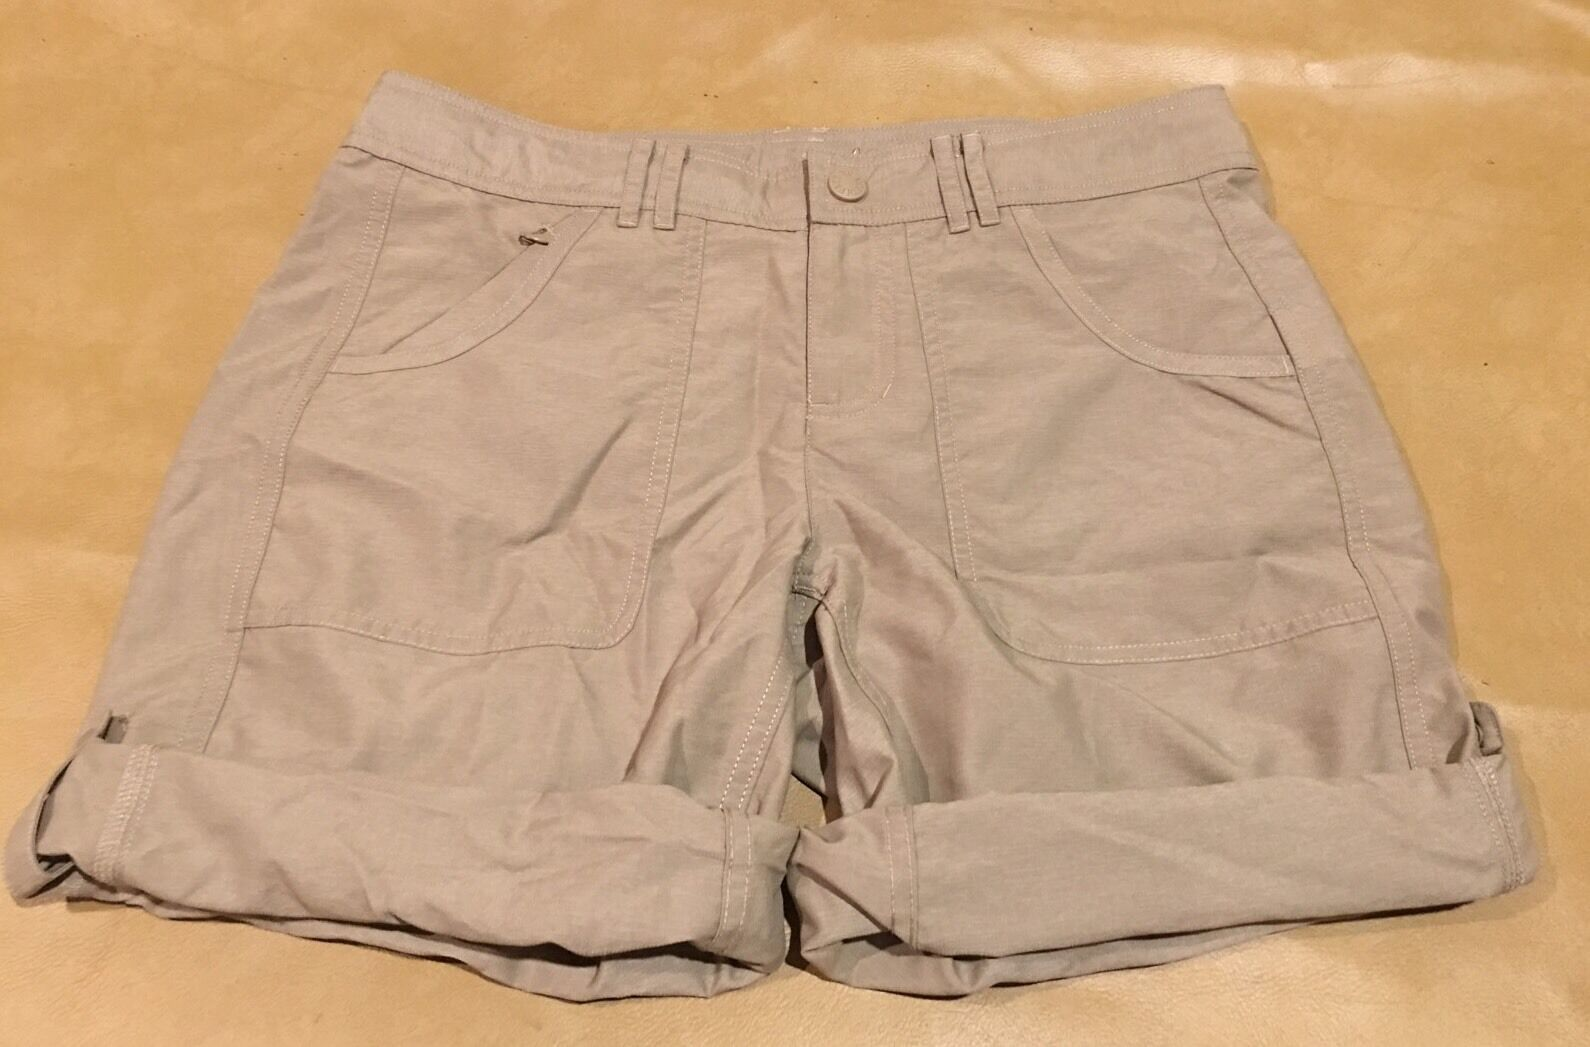 NWT The North Face Women Shorts Beige Roll Up Outdoor Hike New Size 6